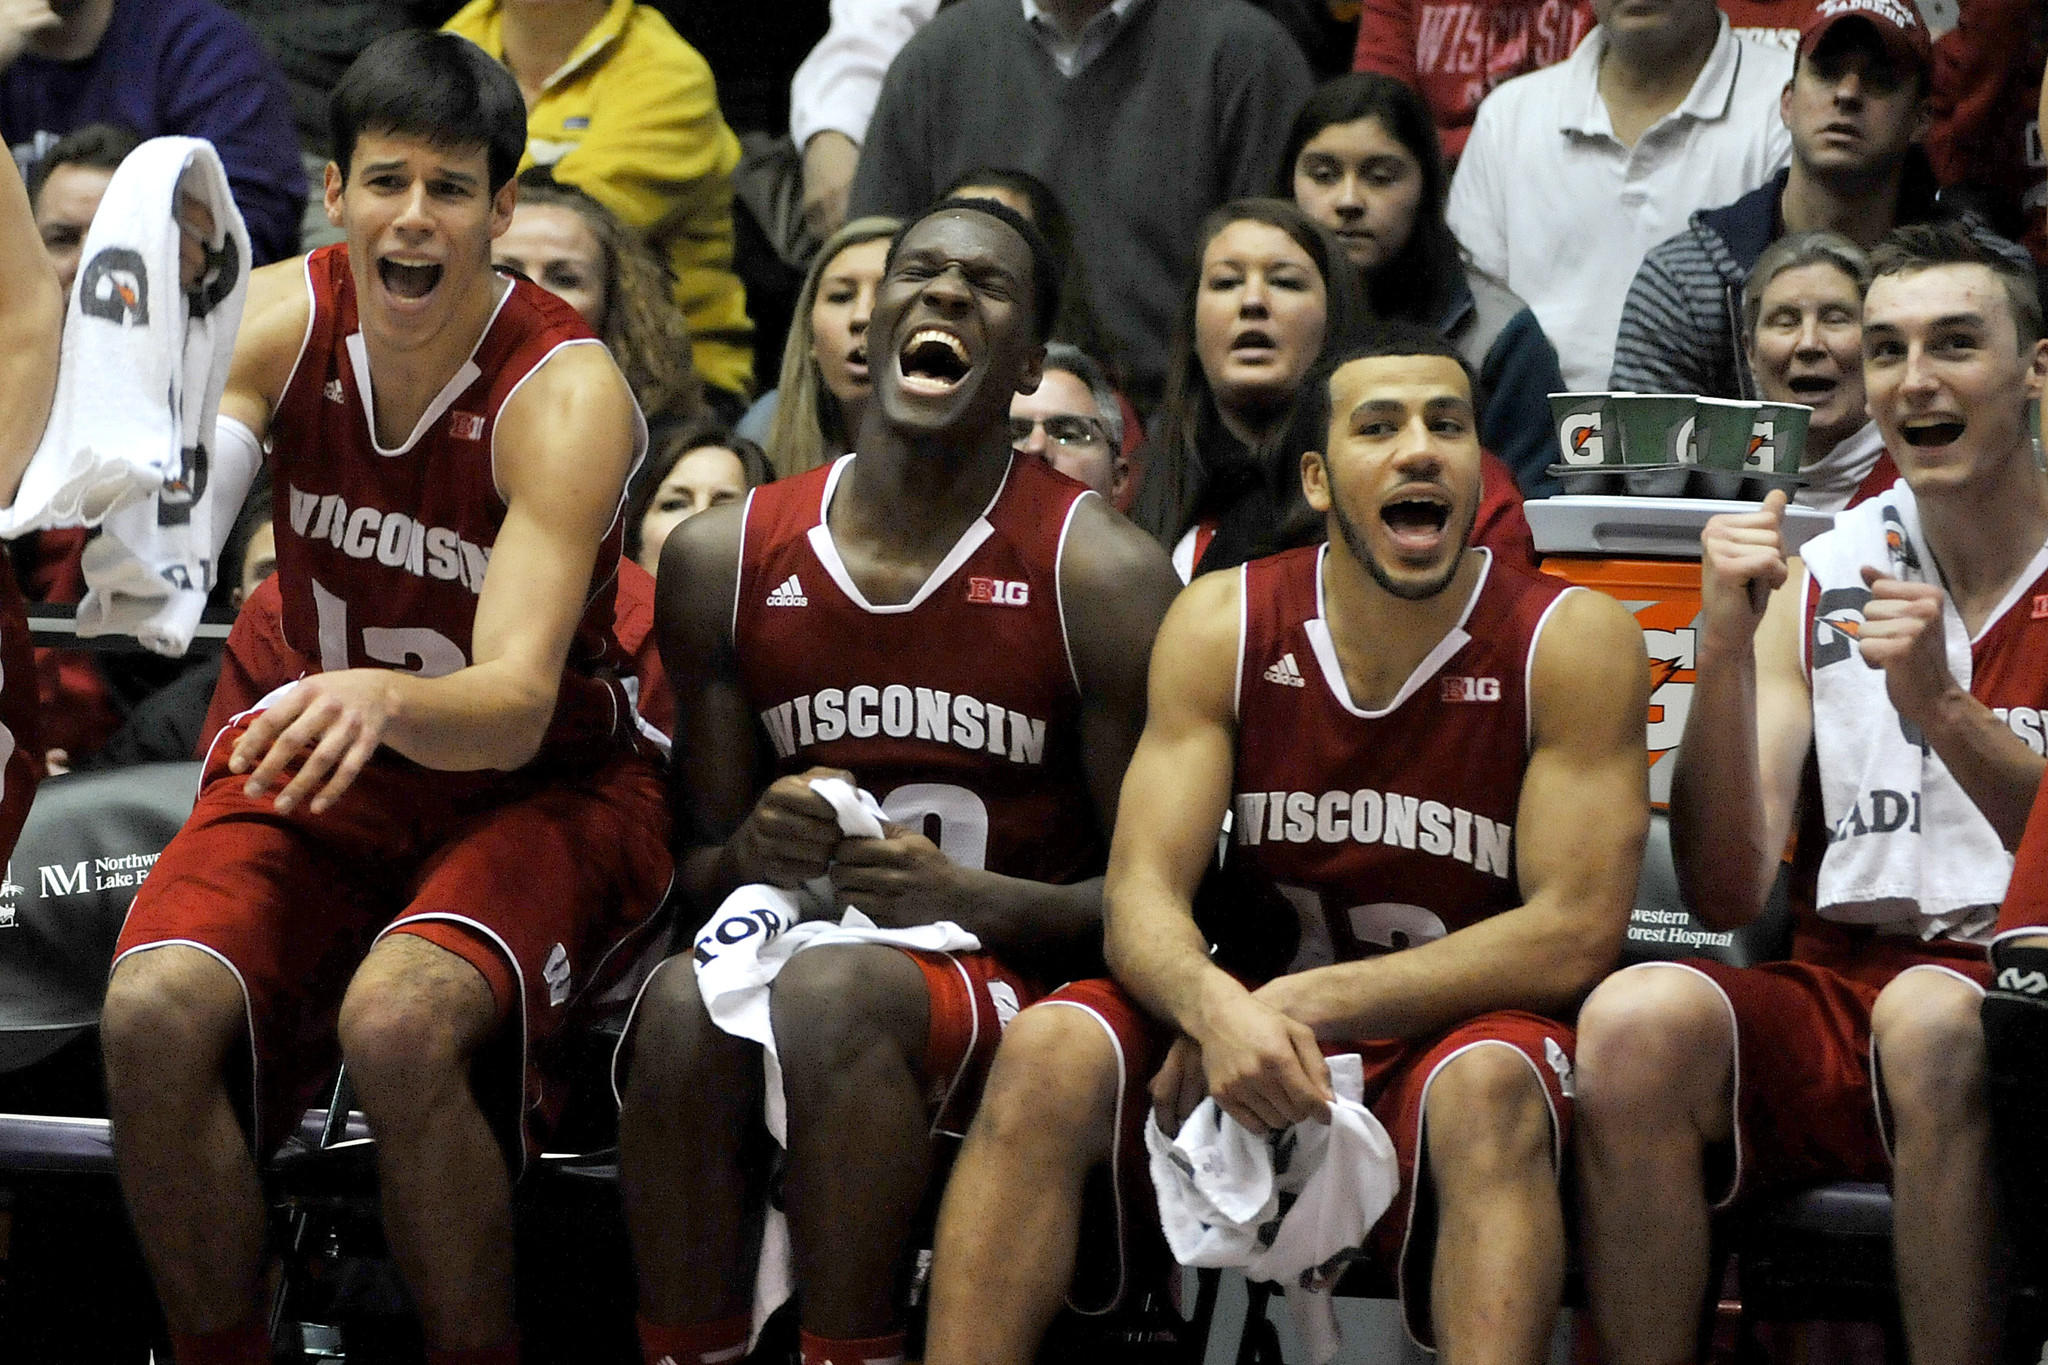 The Wisconsin bench is all smiles late in the win over Northwestern.